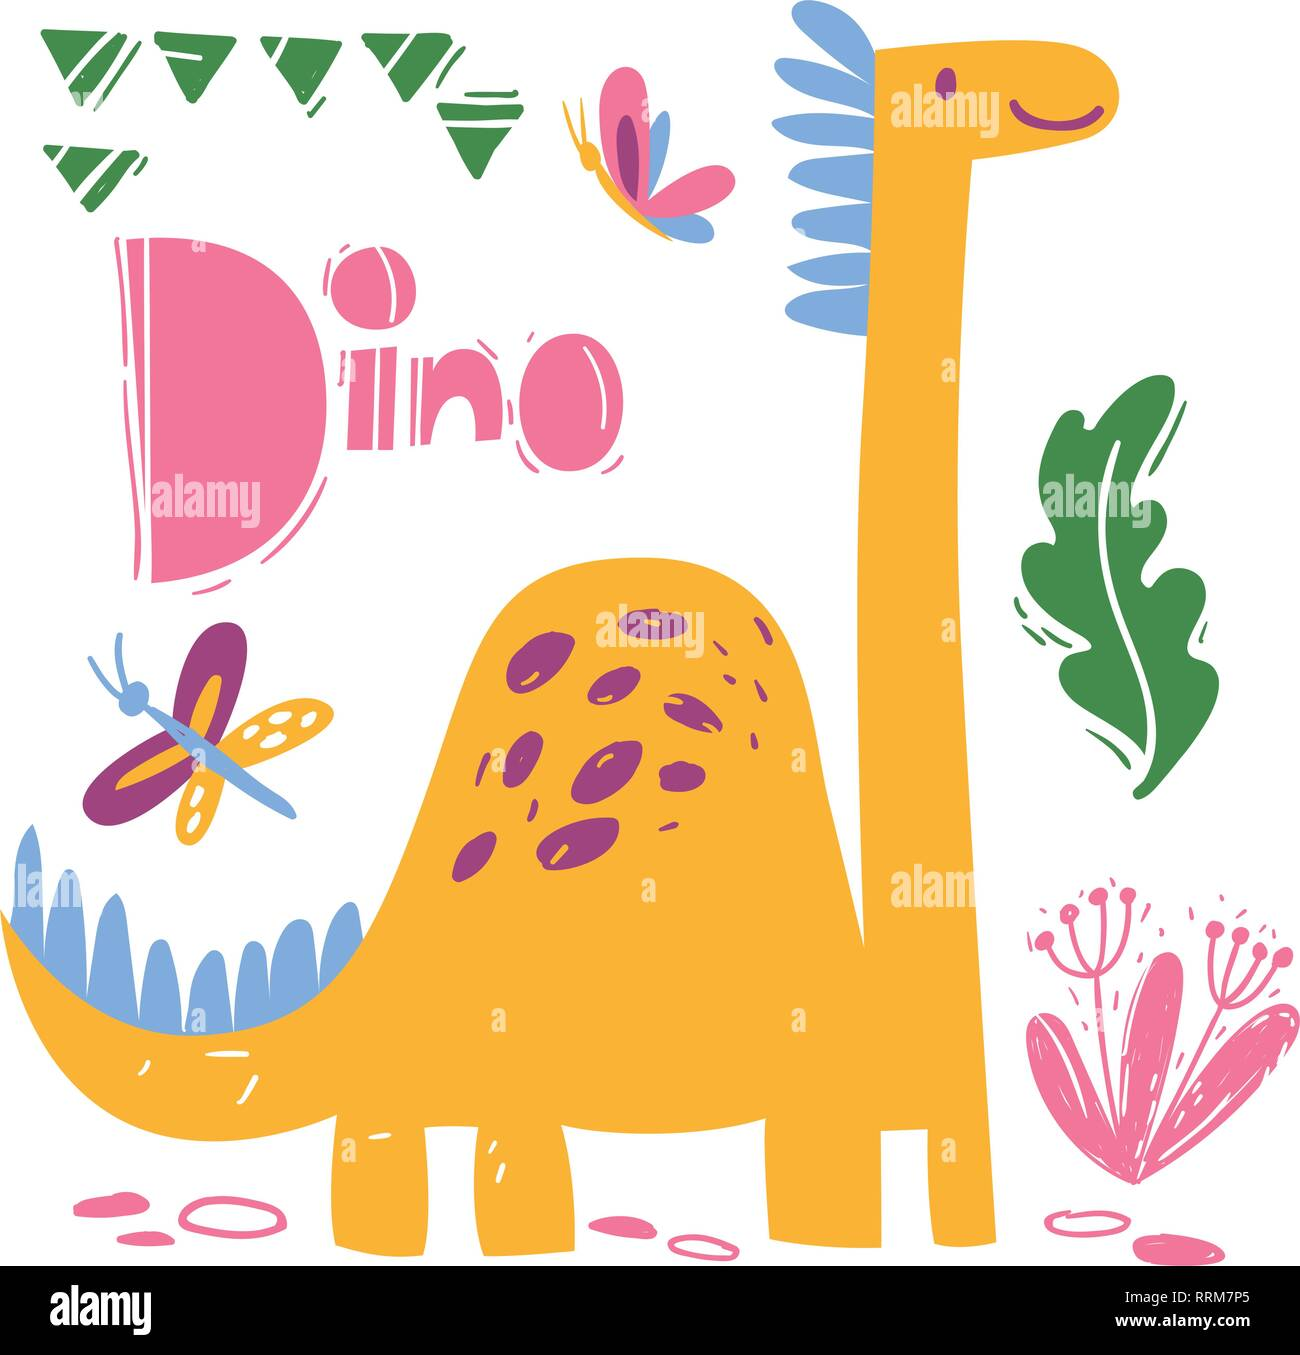 Cool dino poster with funny cartoon dinosaur - Stock Image